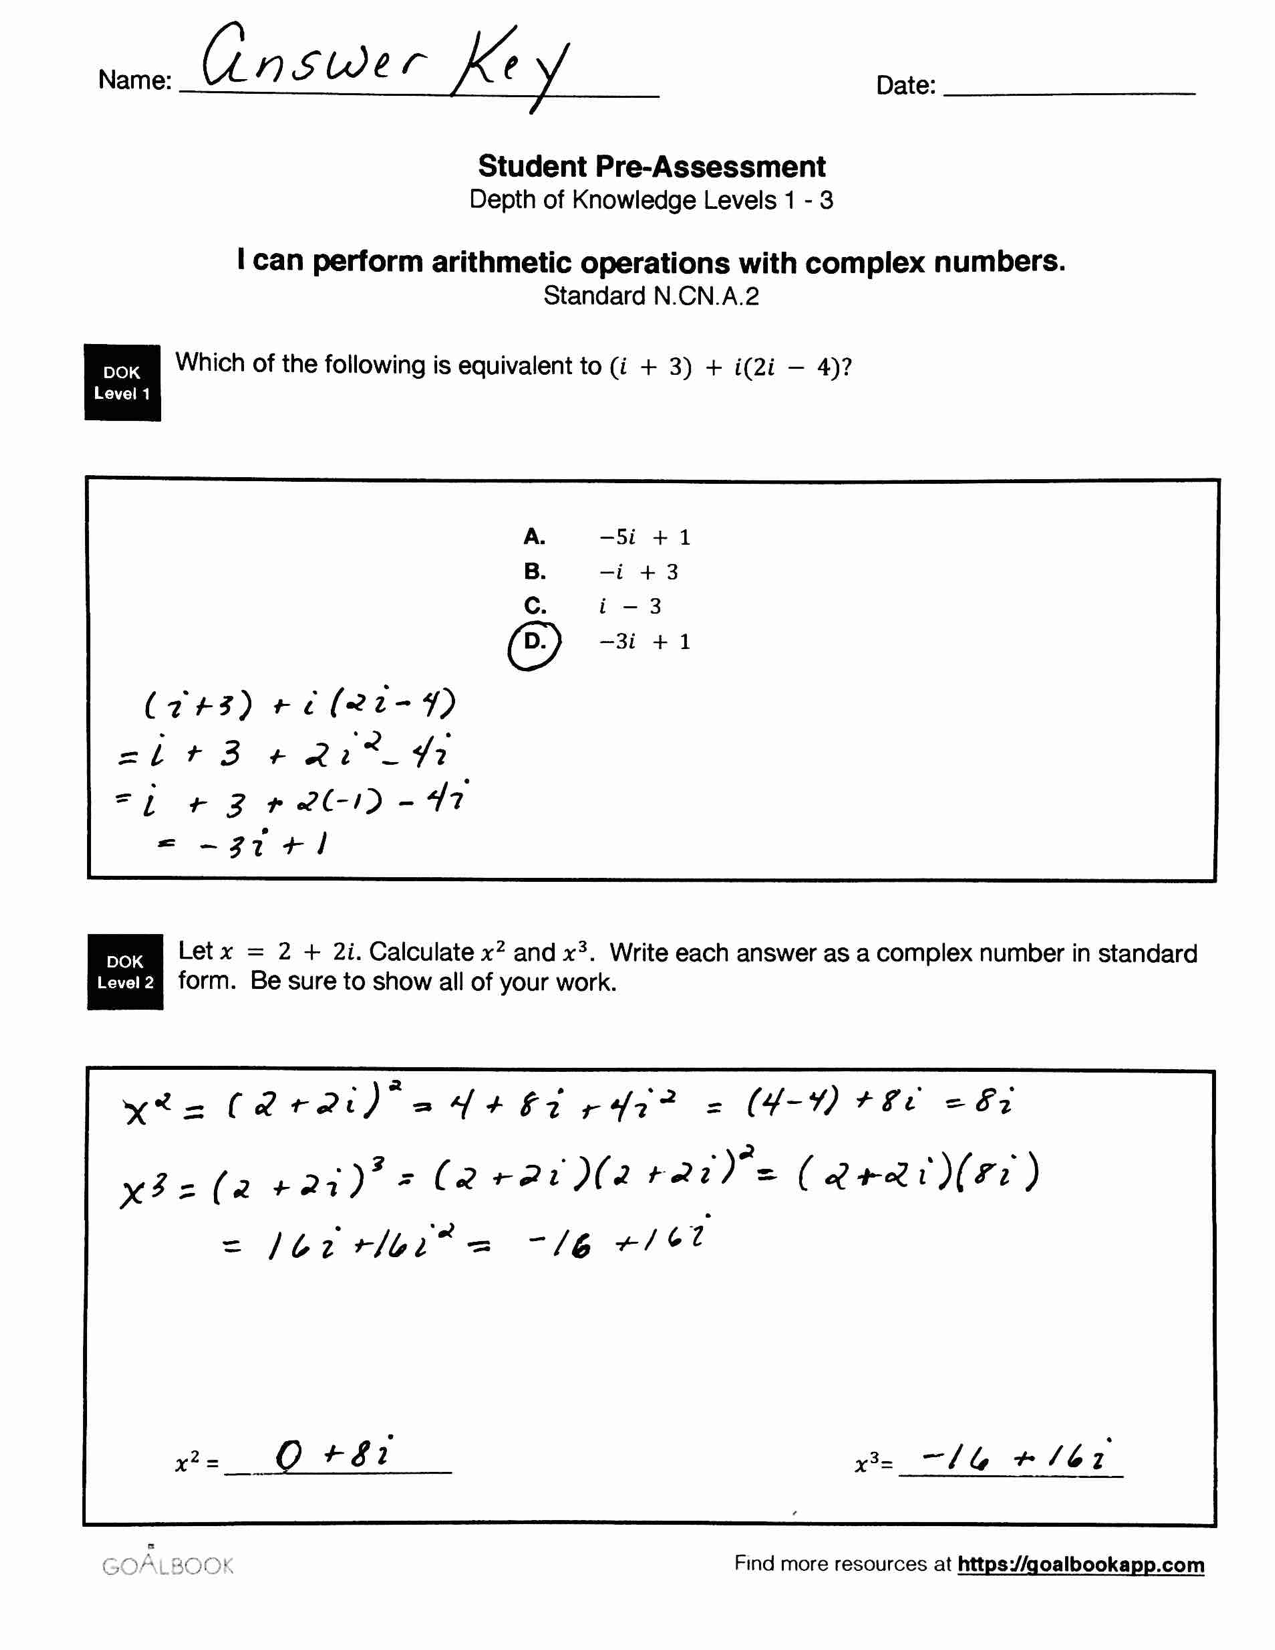 Hsn cn2 operations using complex numbers math high school full resource contains falaconquin